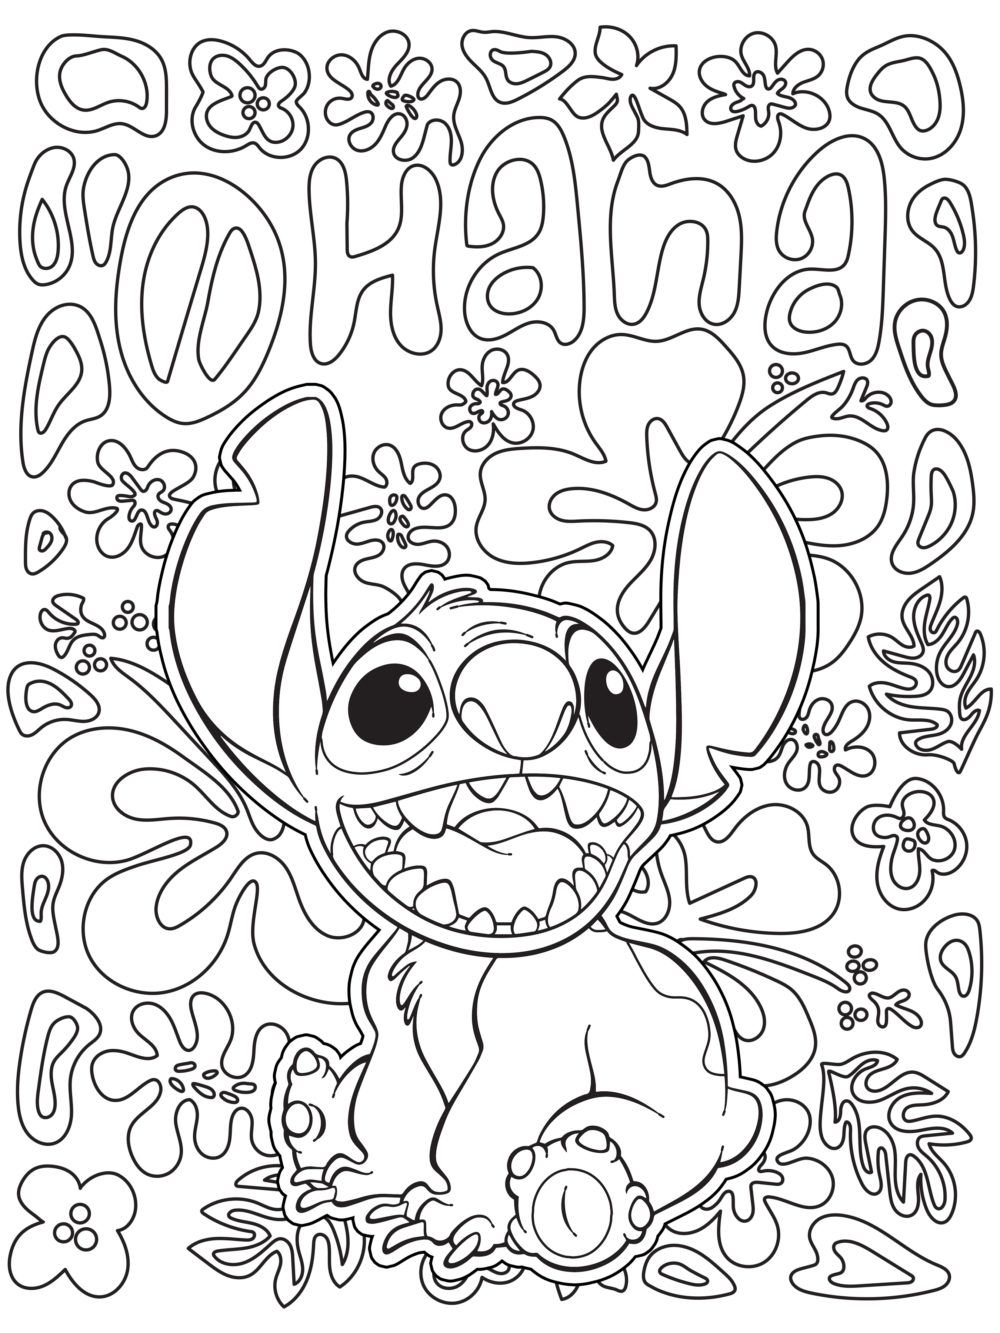 Free Hana for Sharpie Coloring Pages printable